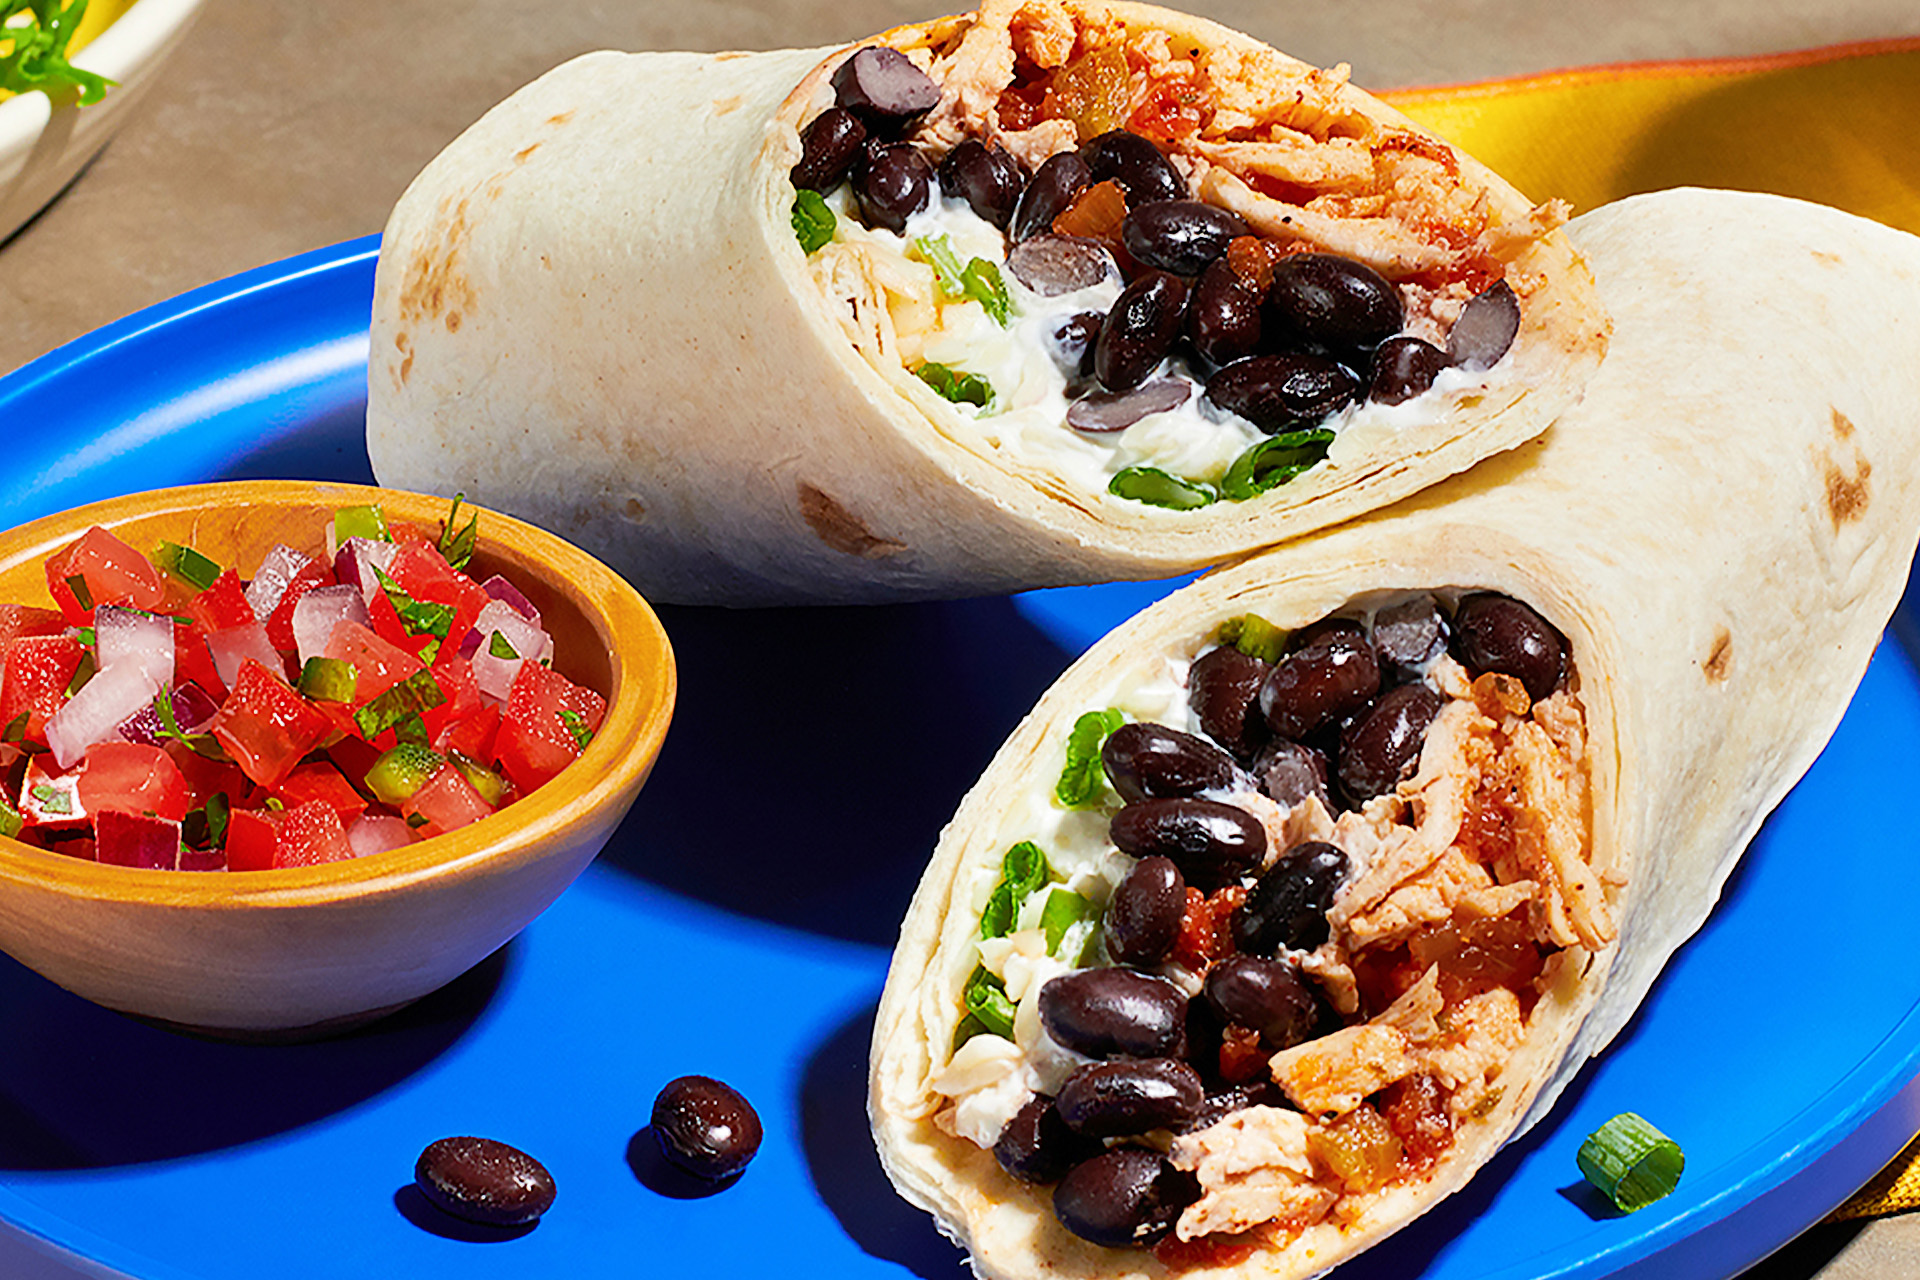 A chicken and black bean burrito sliced in half on a blue plate with small bowl of tomato salsa